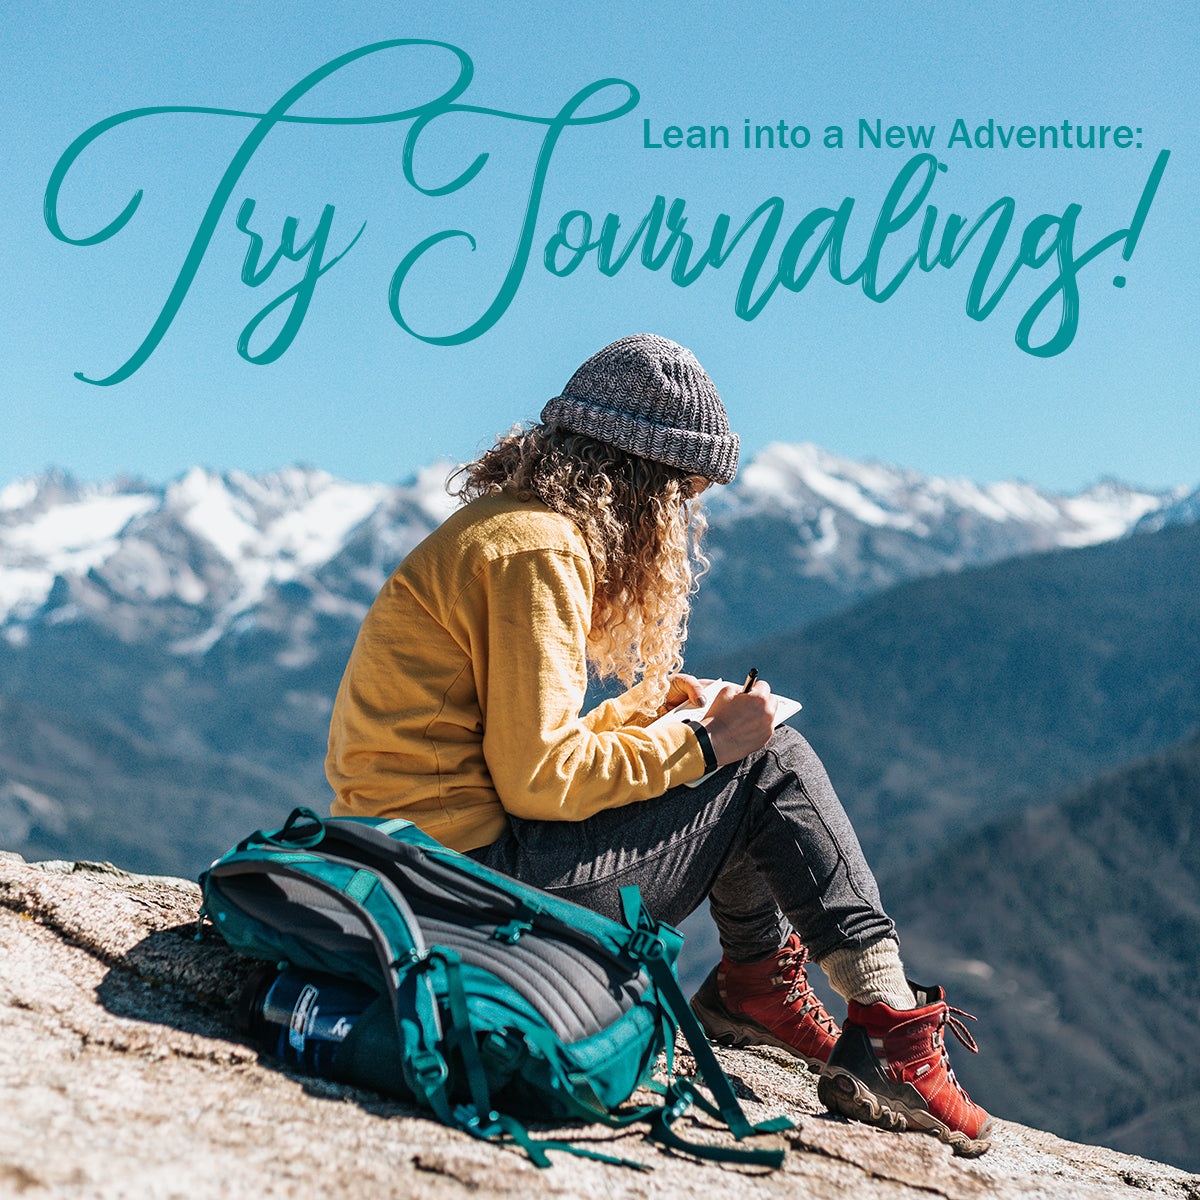 lean into a new adventure try journaling!